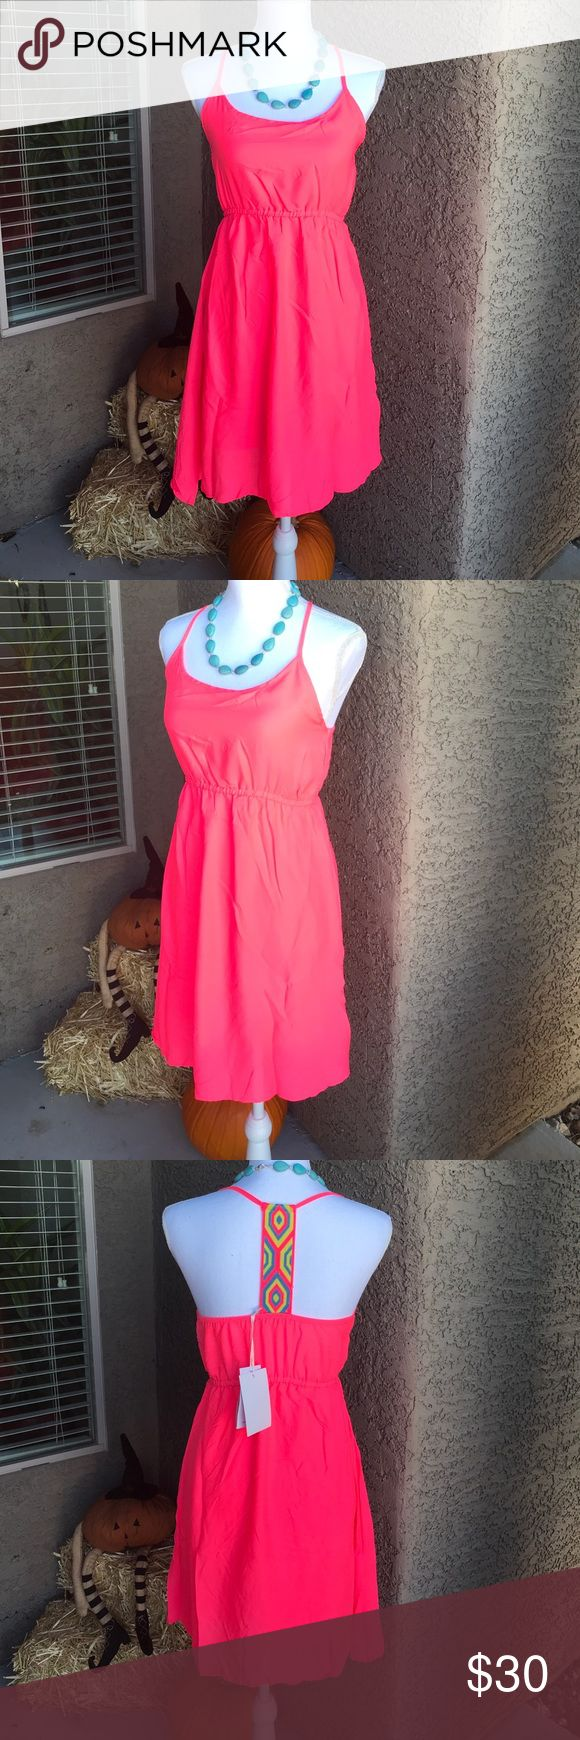 Macy's pink sleeveless dress size S knee length Brand new. Size small women's. Hot pink neon pink dress. Lined with a pink material so you can't see through it. Sleeveless with a beautiful handcrafted back designs that wraps around to the front. Puffy around chest area. Knee length. Originally $50.00 • FEEL FREE TO MAKE OFFERS• Macy's Dresses Midi